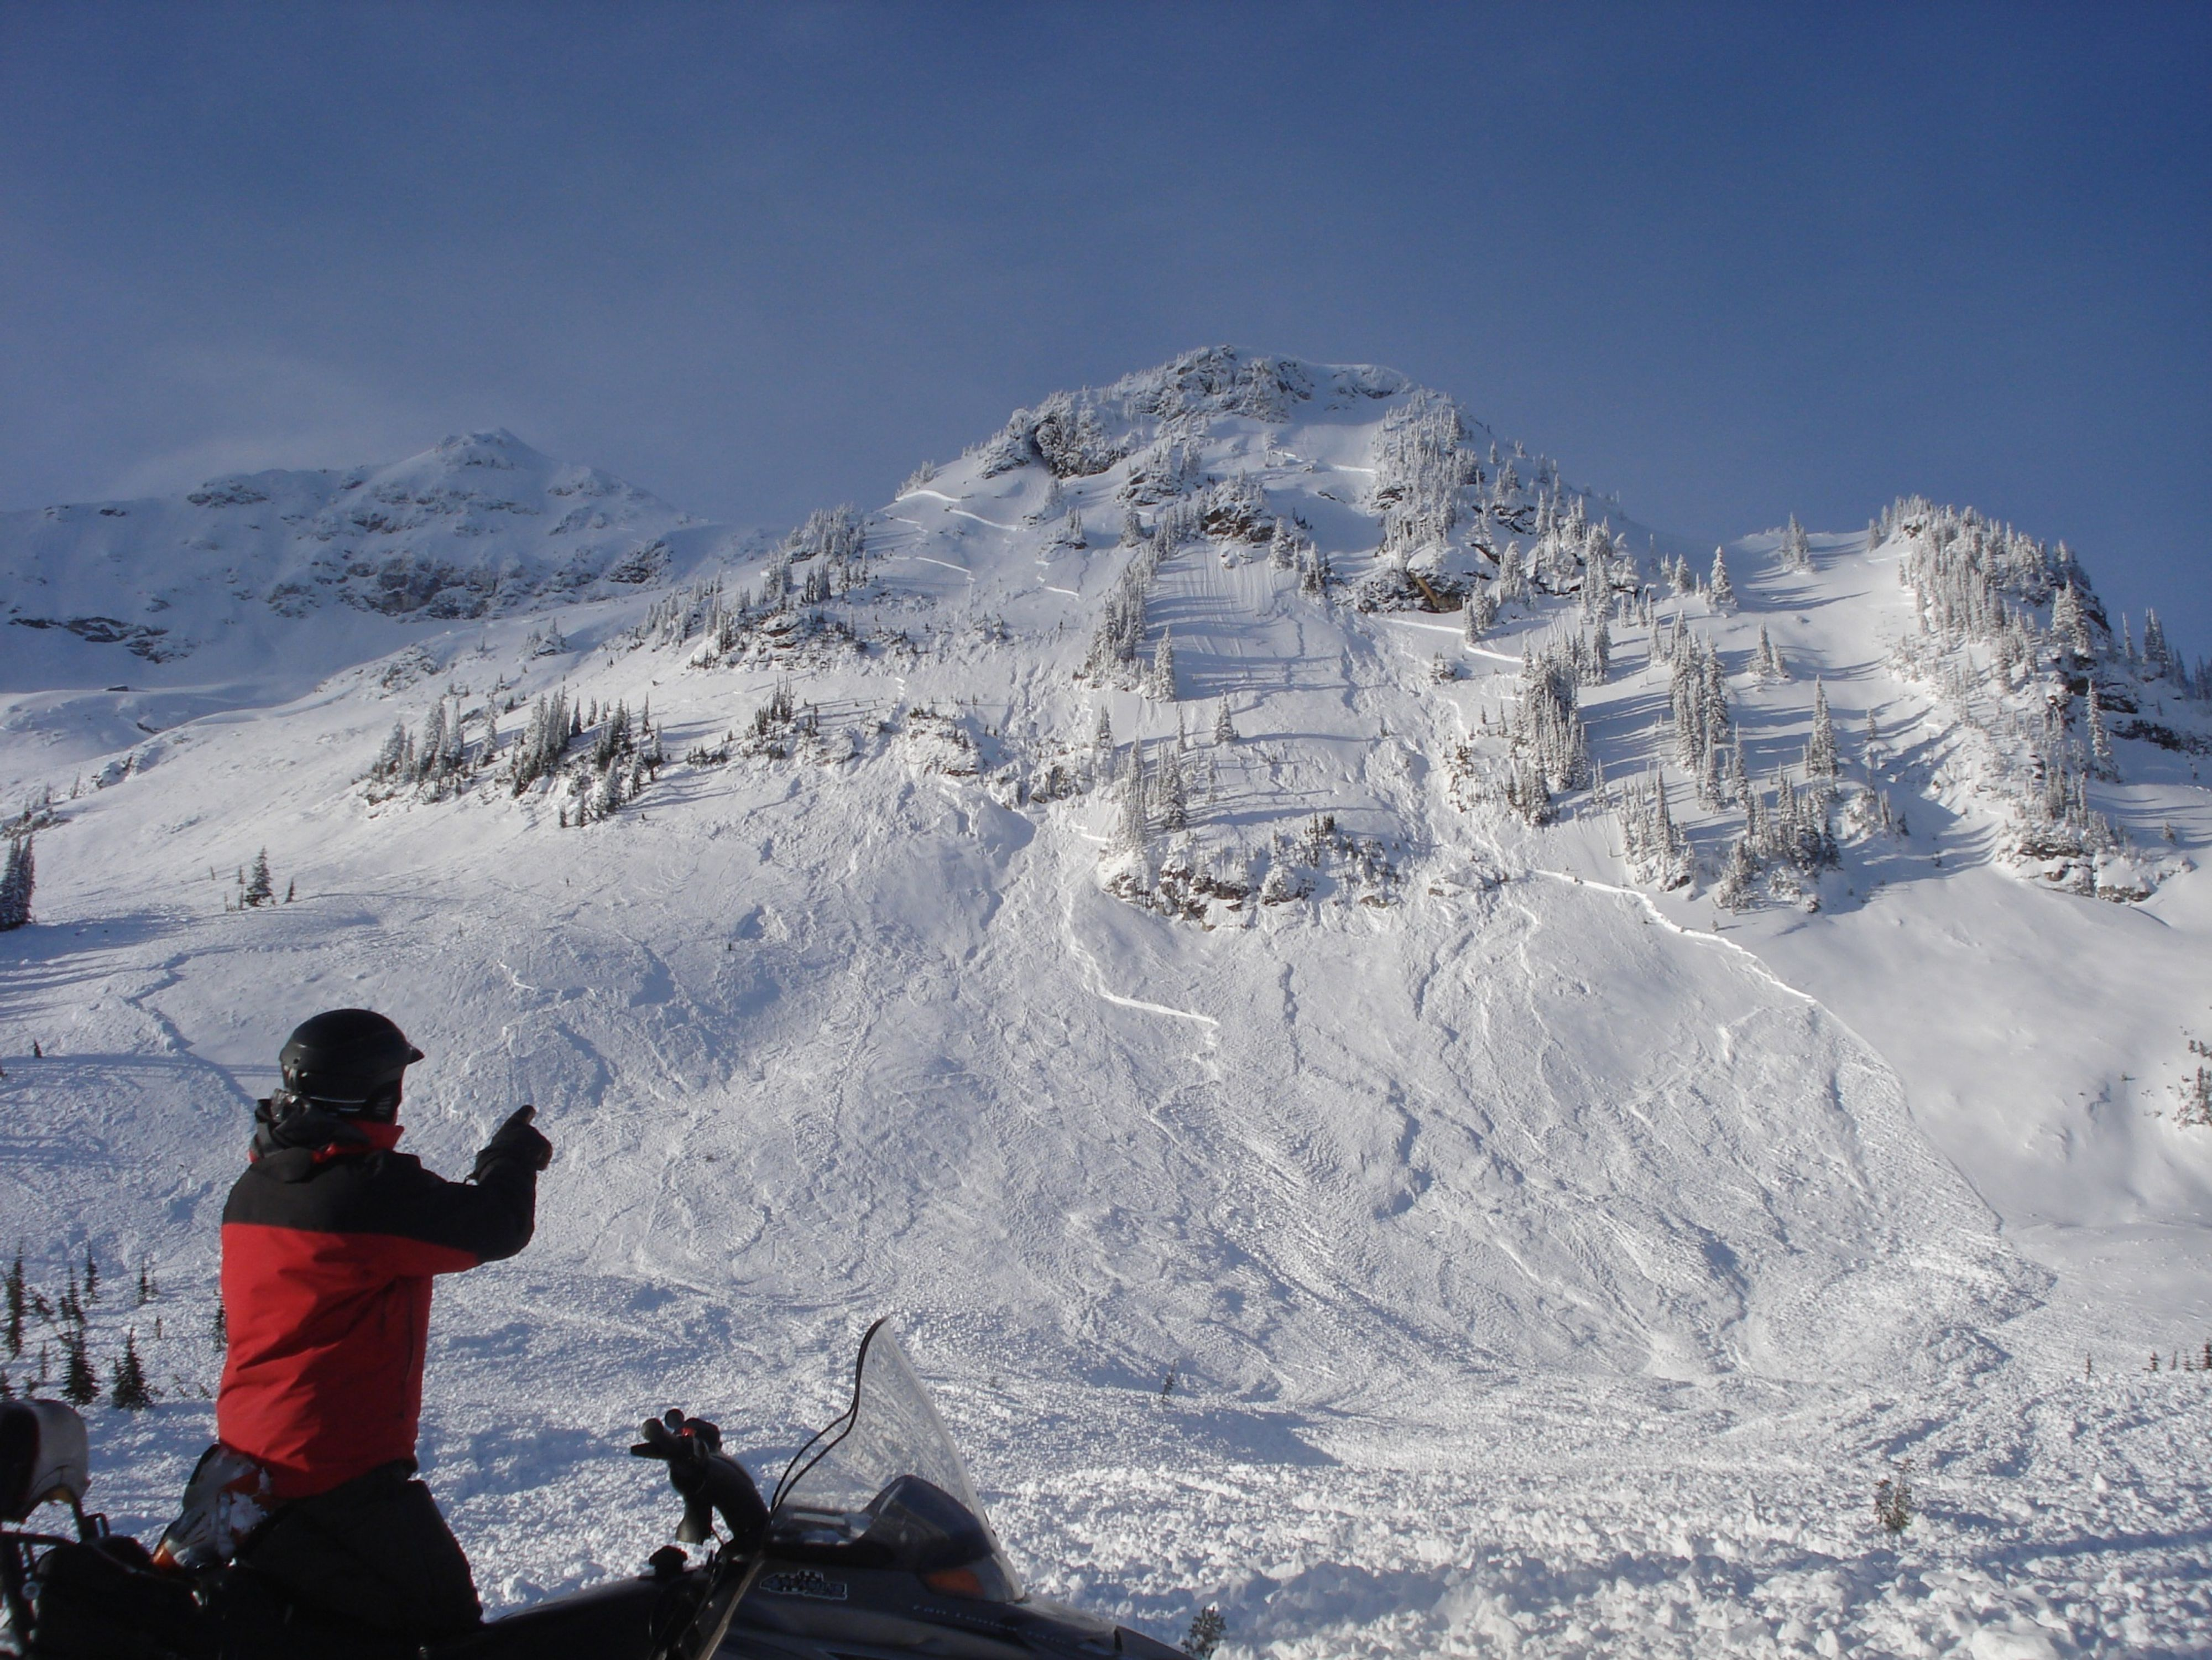 Natural avalanche activity is a sign that human-triggered avalanches are more likely.